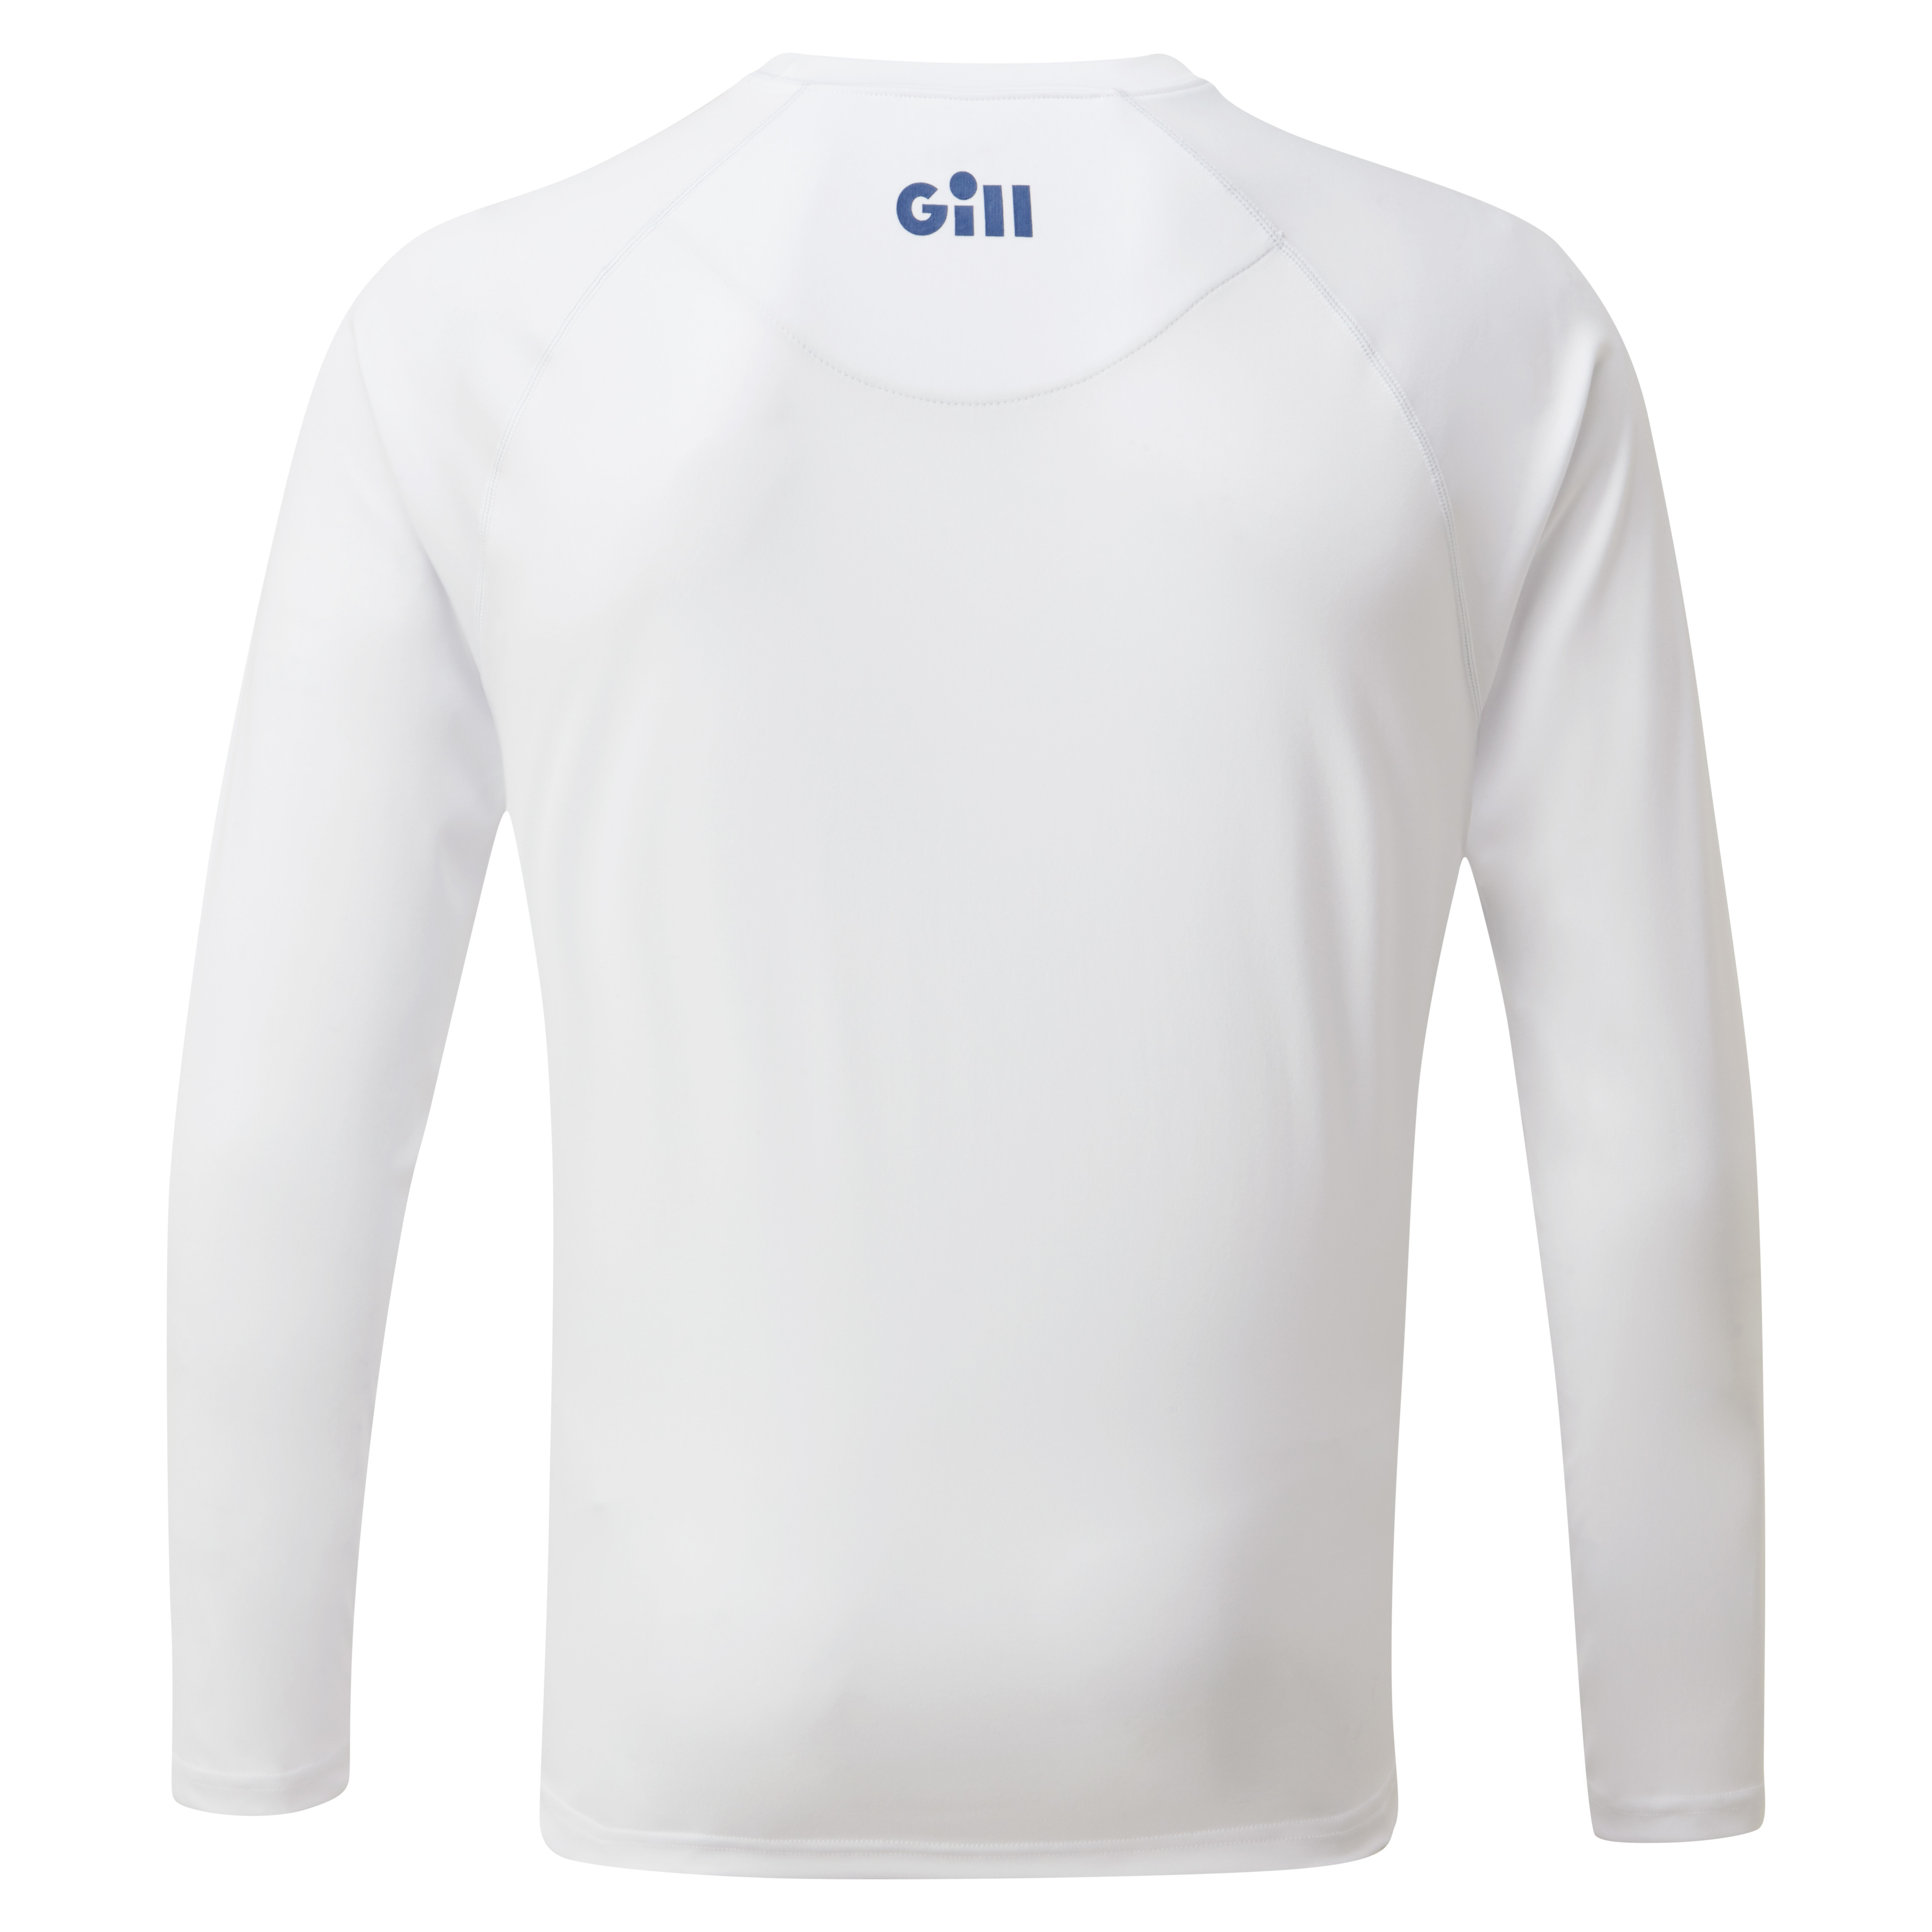 T-shirt Race Manches Longues Femme - RS37-WHI01-2.jpg